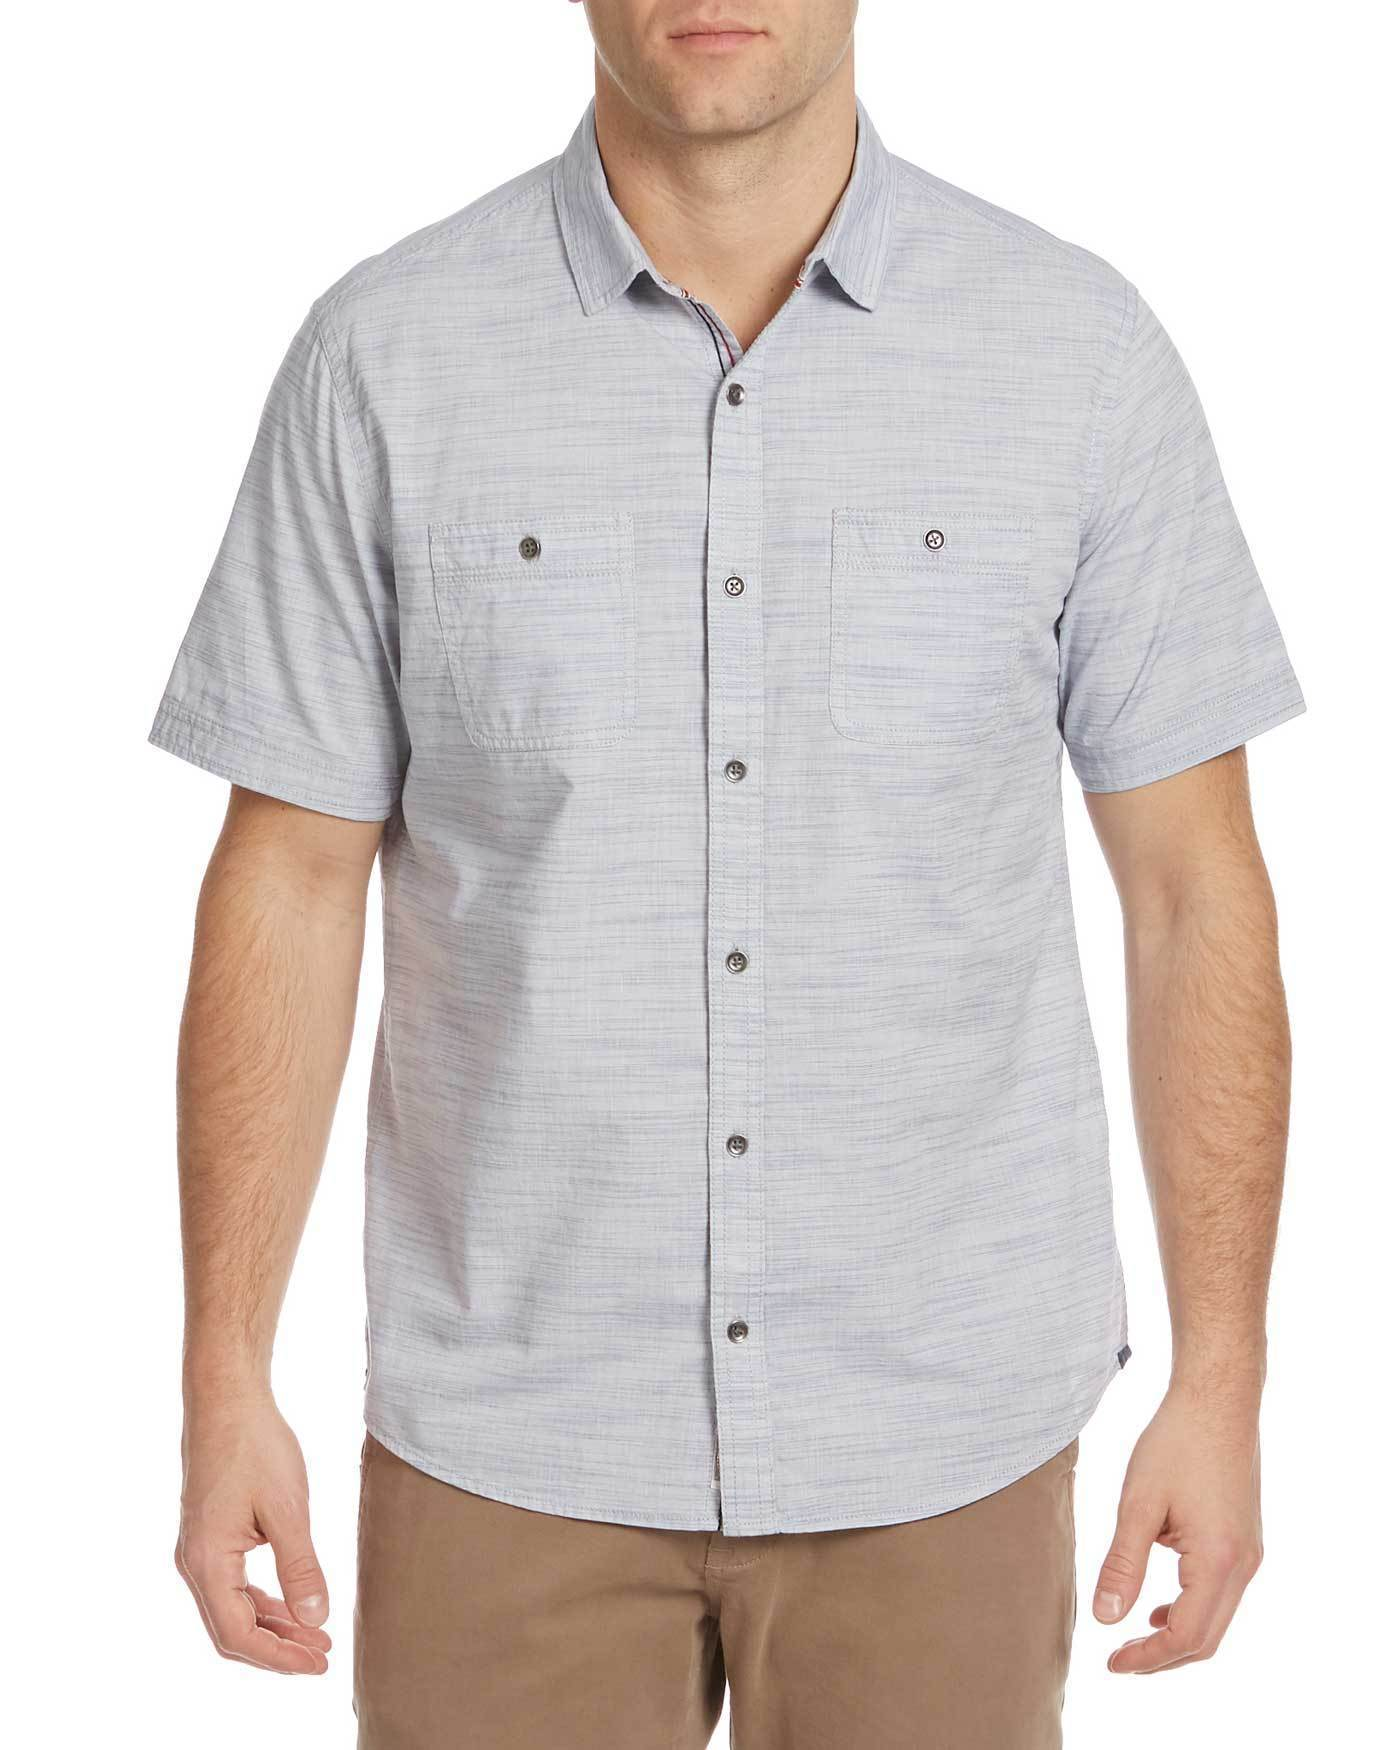 Flag & Anthem Scranton Short Sleeve Shirt COREWS613